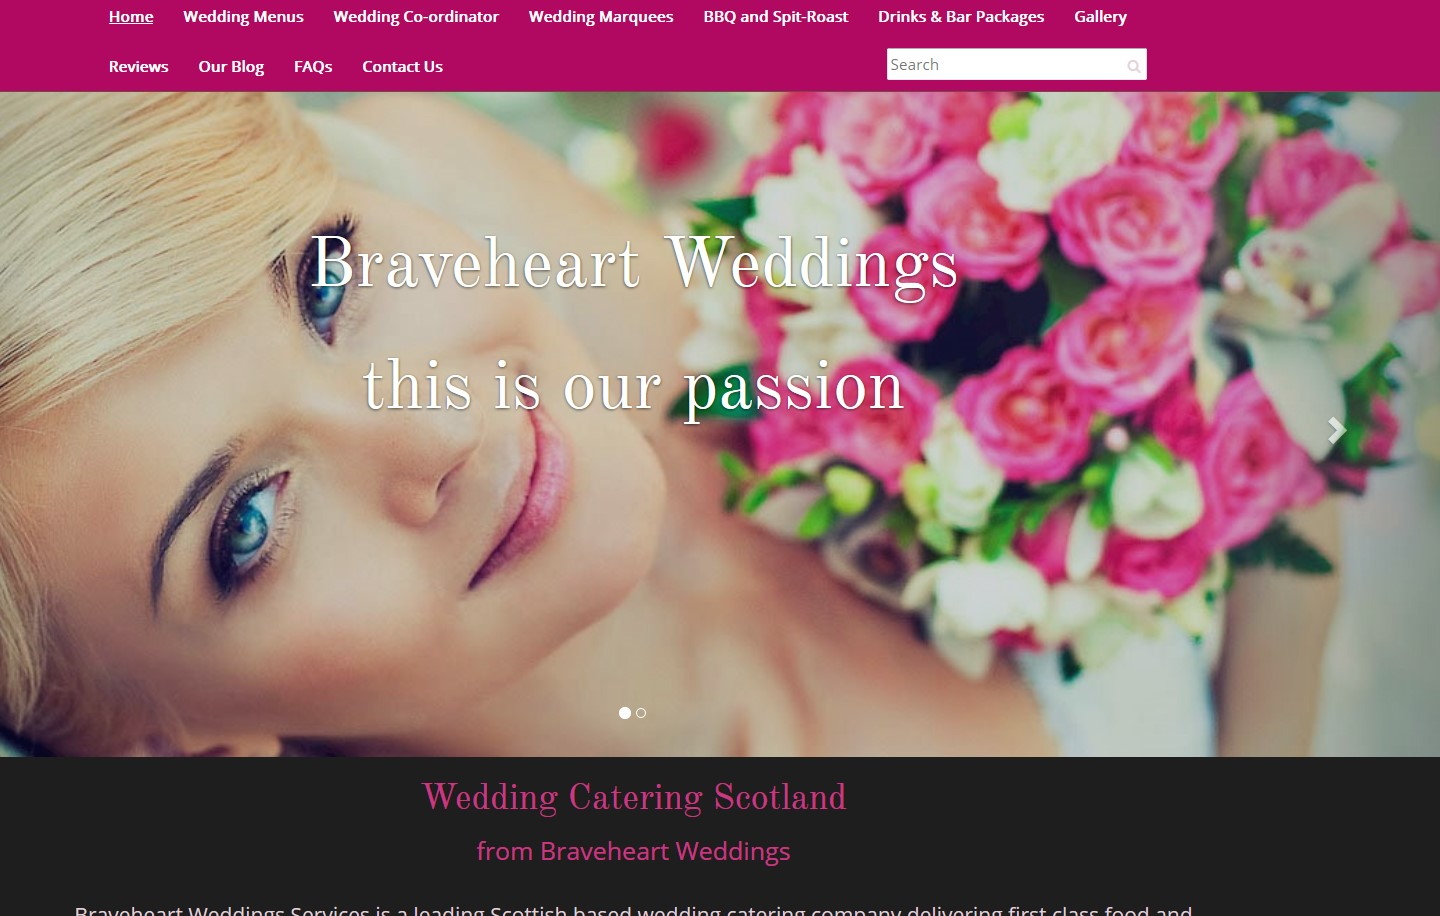 Braveheart Weddings